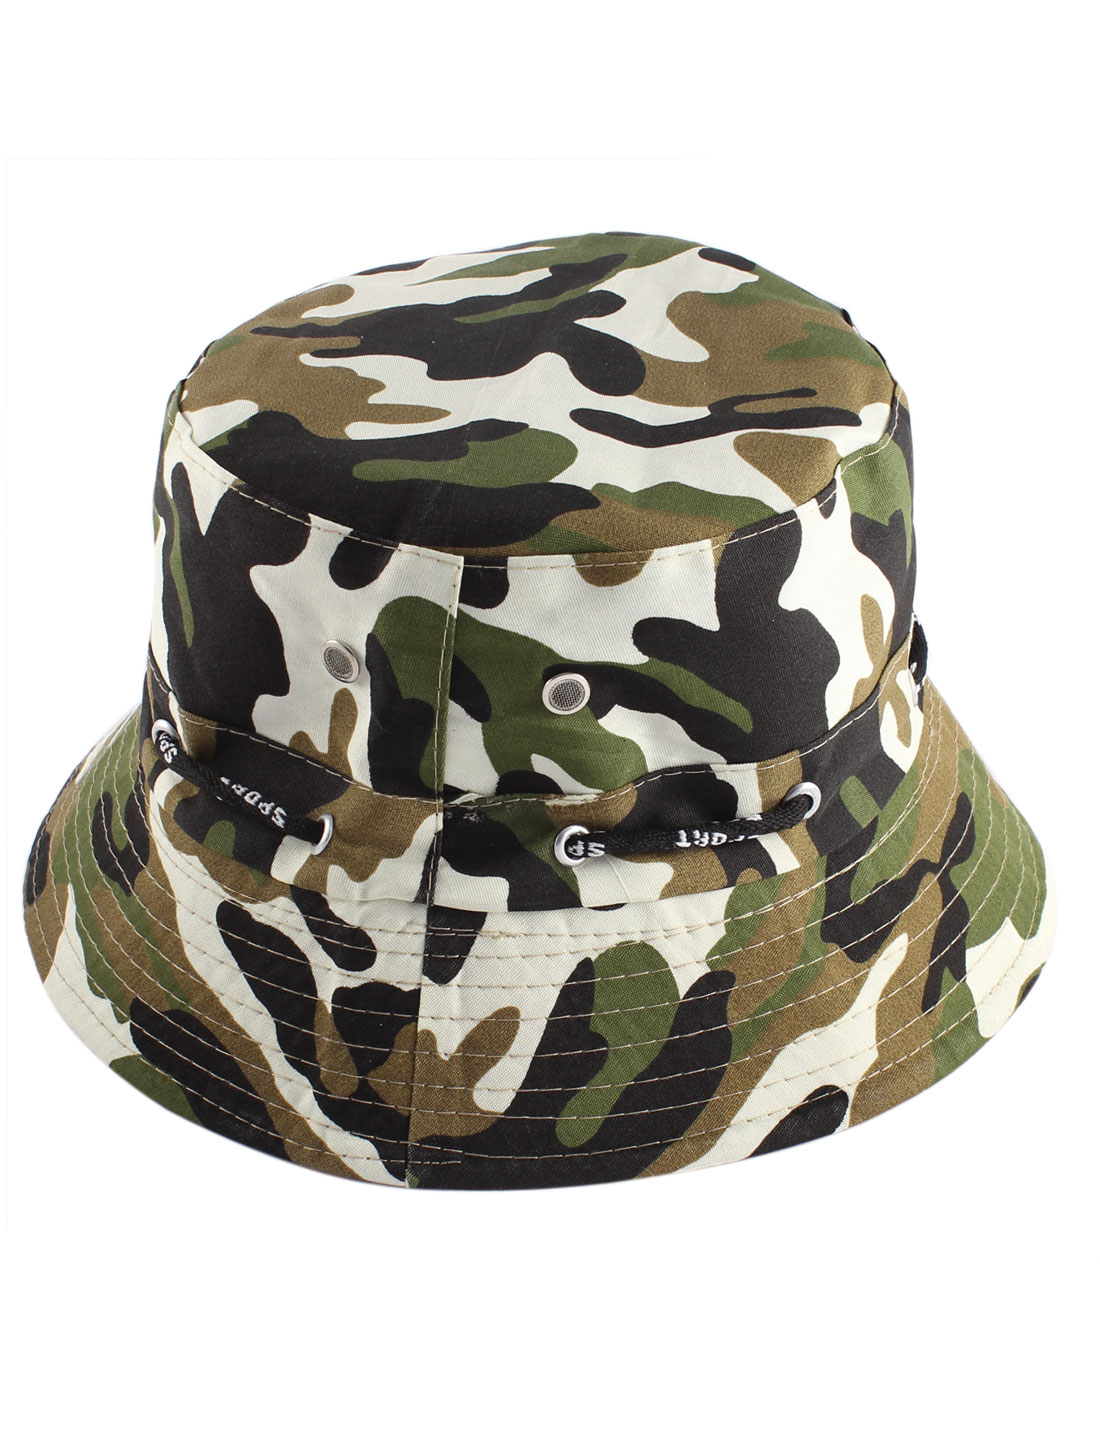 Outdoor Leisure Round Brim Sun Visor Camouflage Print Bucket Hat Cap for Unisex